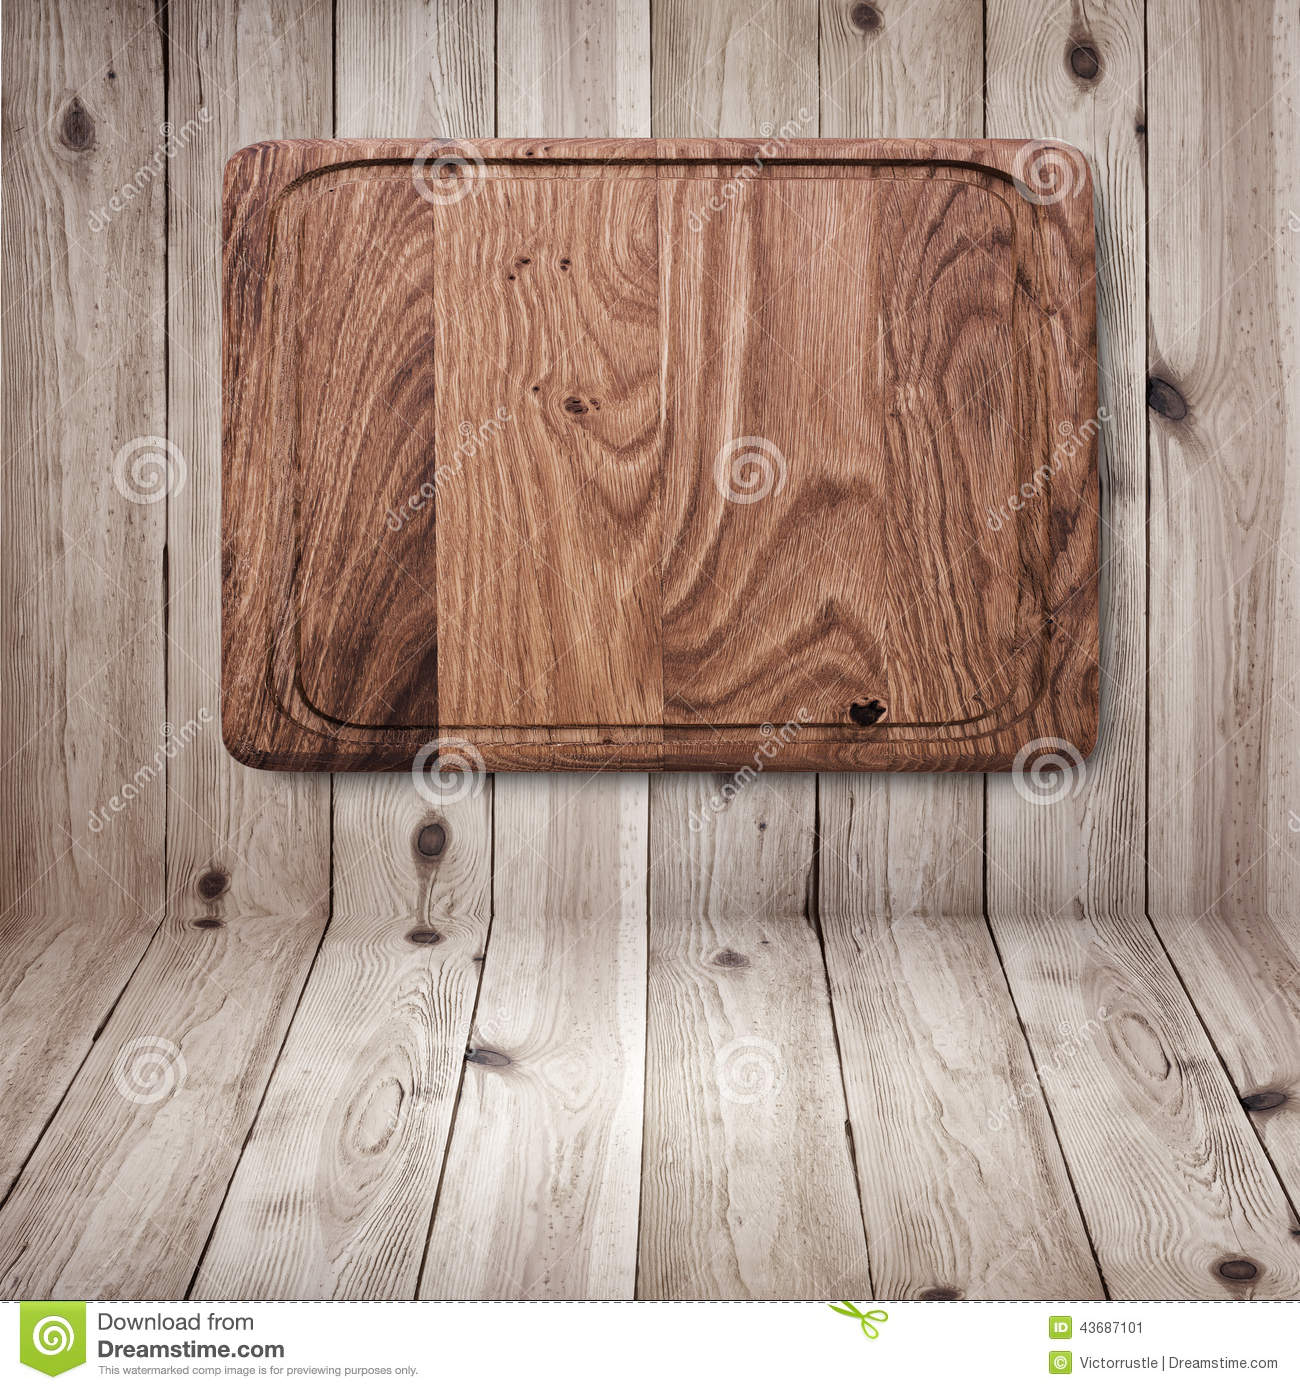 Wood texture wooden kitchen cutting board close stock